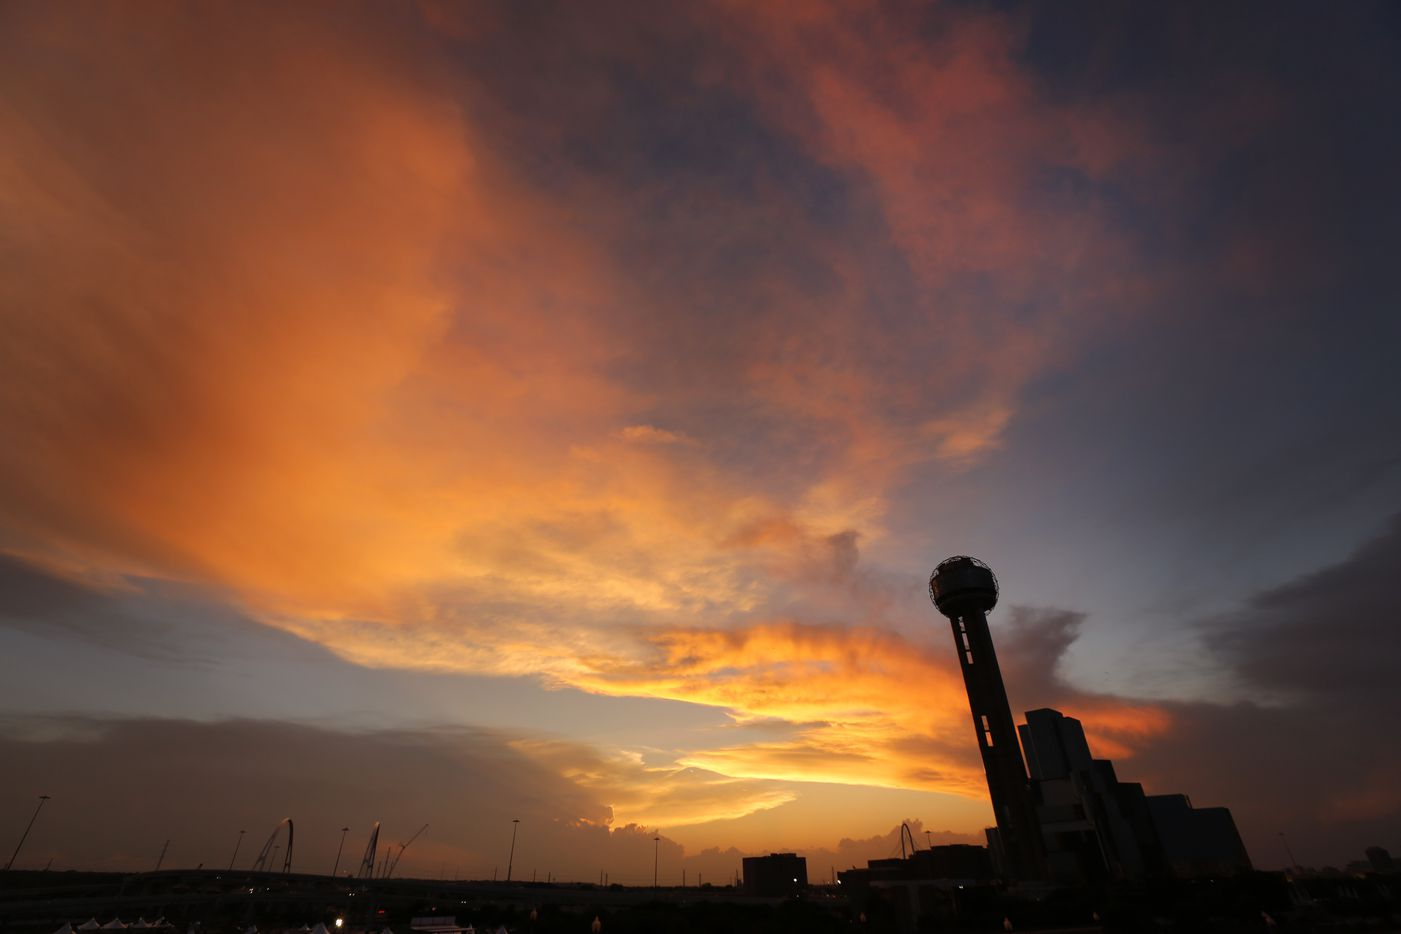 The sun sets behind Reunion Tower as approaching storms loom on the horizon, Friday evening, April 21, 2017. Storms are expected later tonight with a passing cold front.